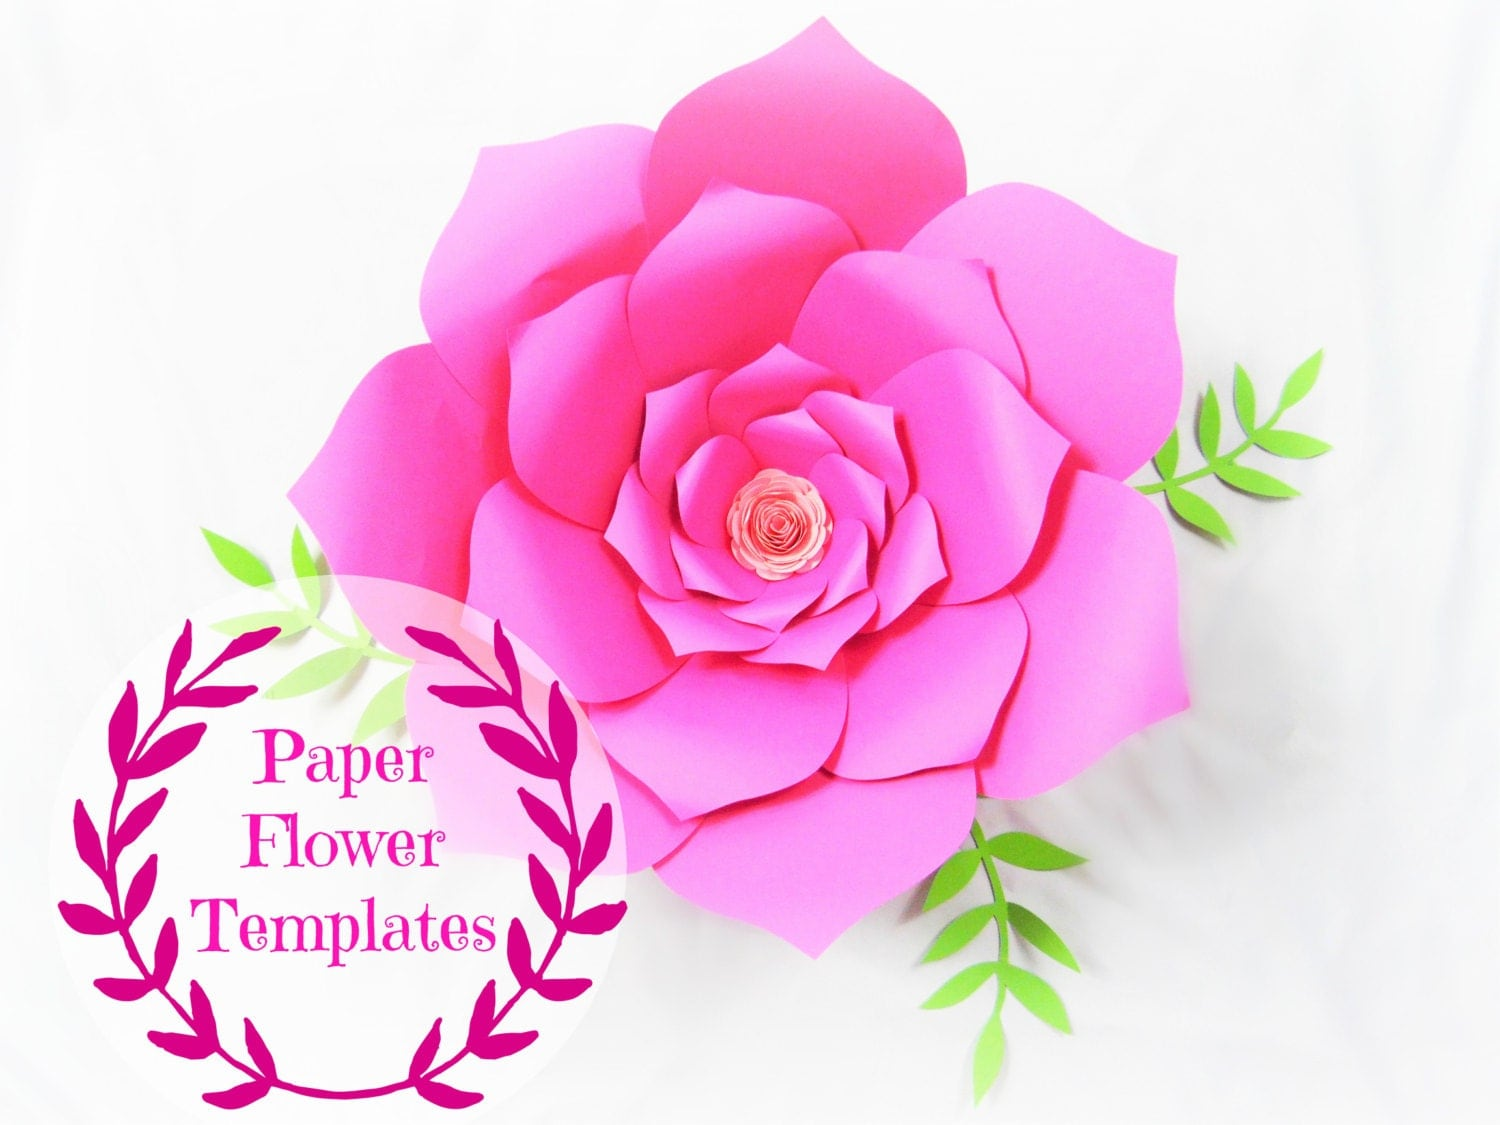 Diy wedding paper flowers flower templates svg cut files for Free printable paper flower templates